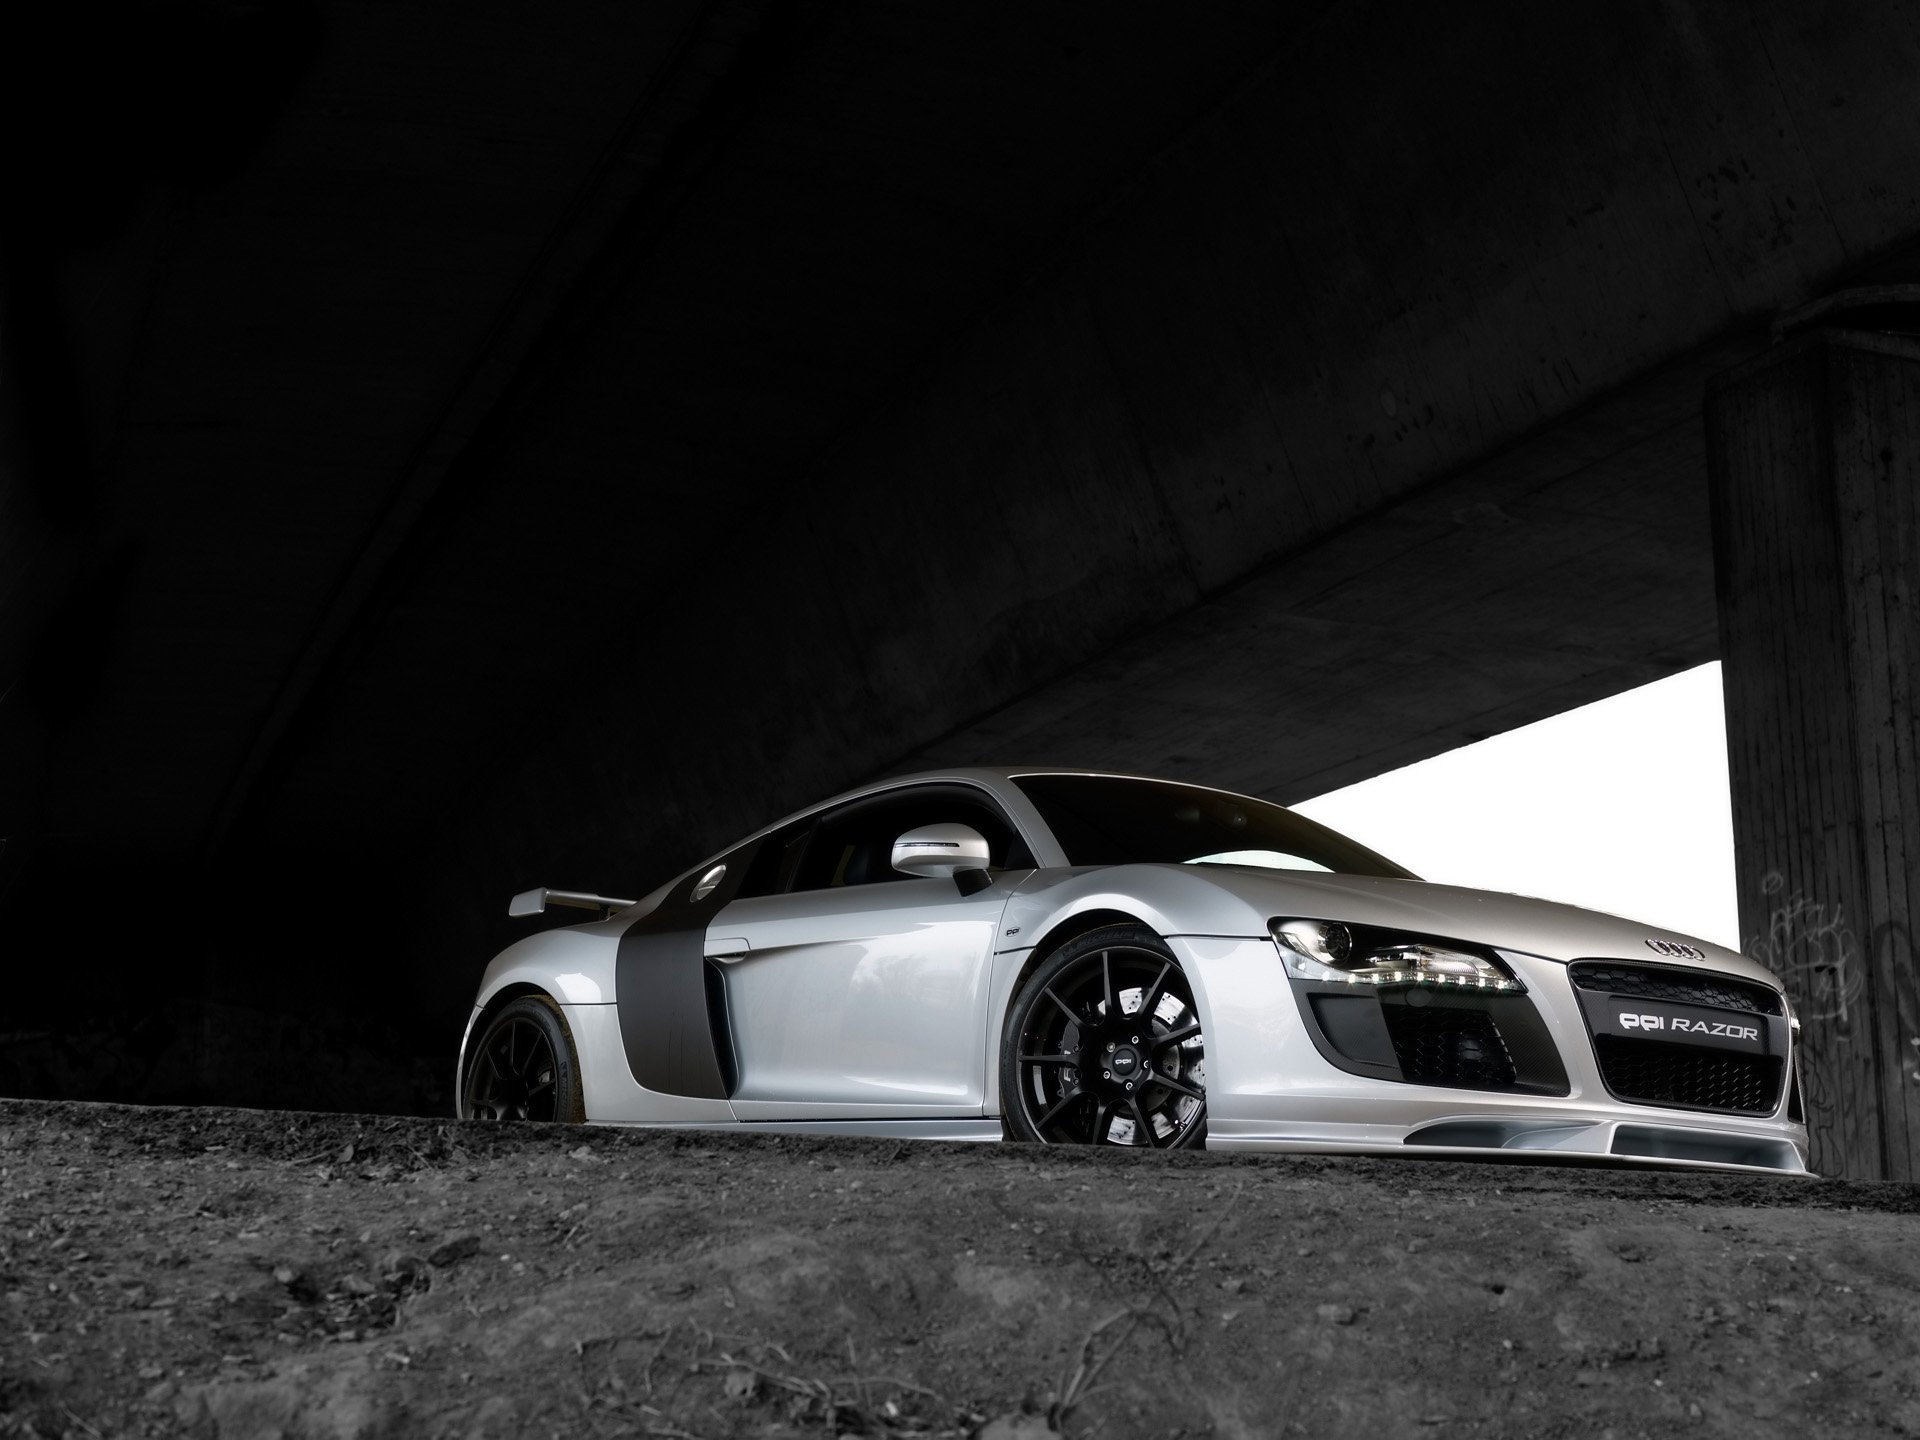 595 Audi HD Wallpapers   Background Images   Wallpaper Abyss HD Wallpaper   Background Image ID 76921  1920x1440 Vehicles Audi